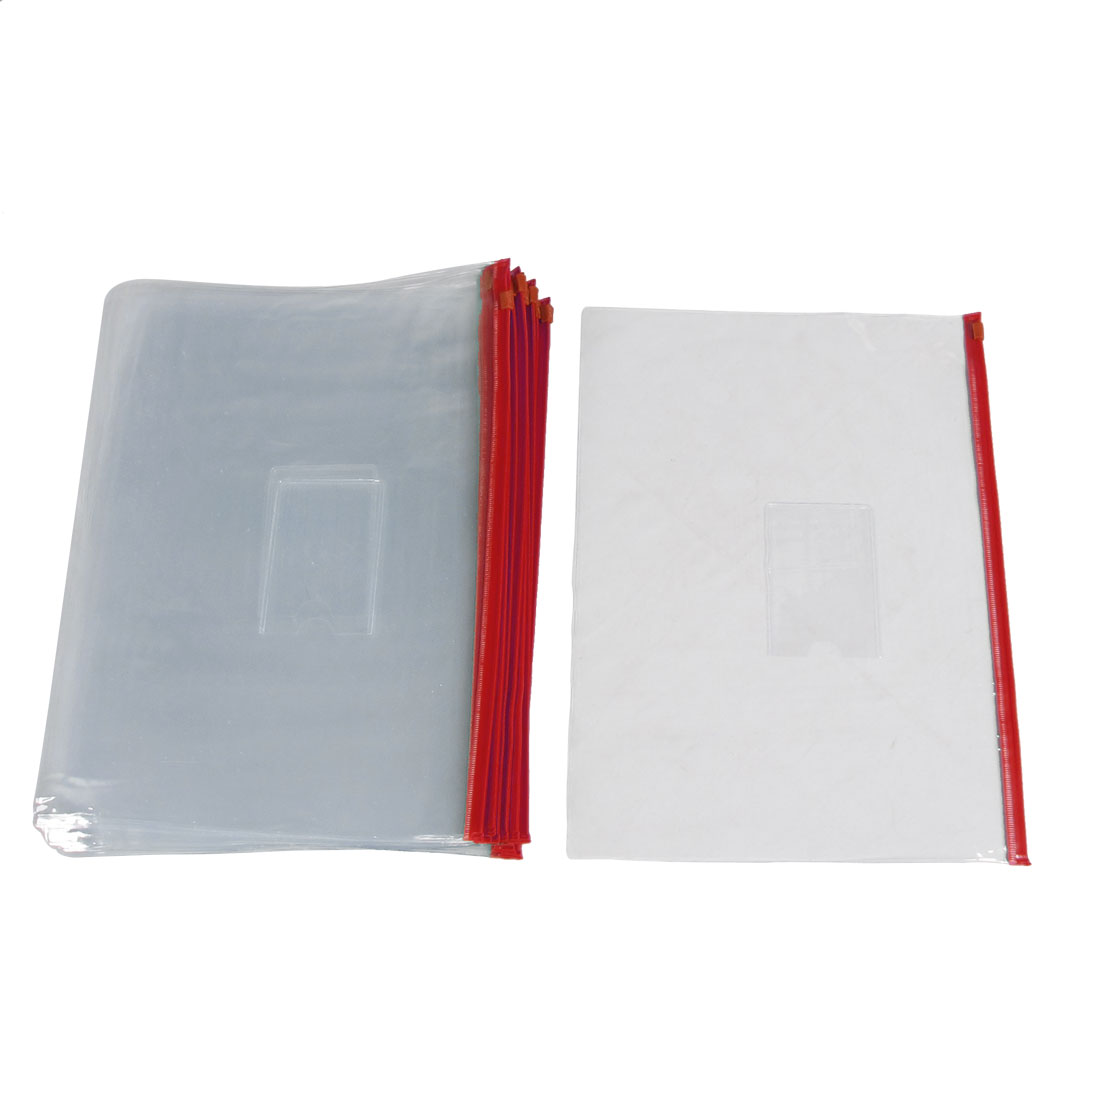 20 Pcs Red Clear Size A4 Paper Slider Ziplock Closure Folders Files Bags